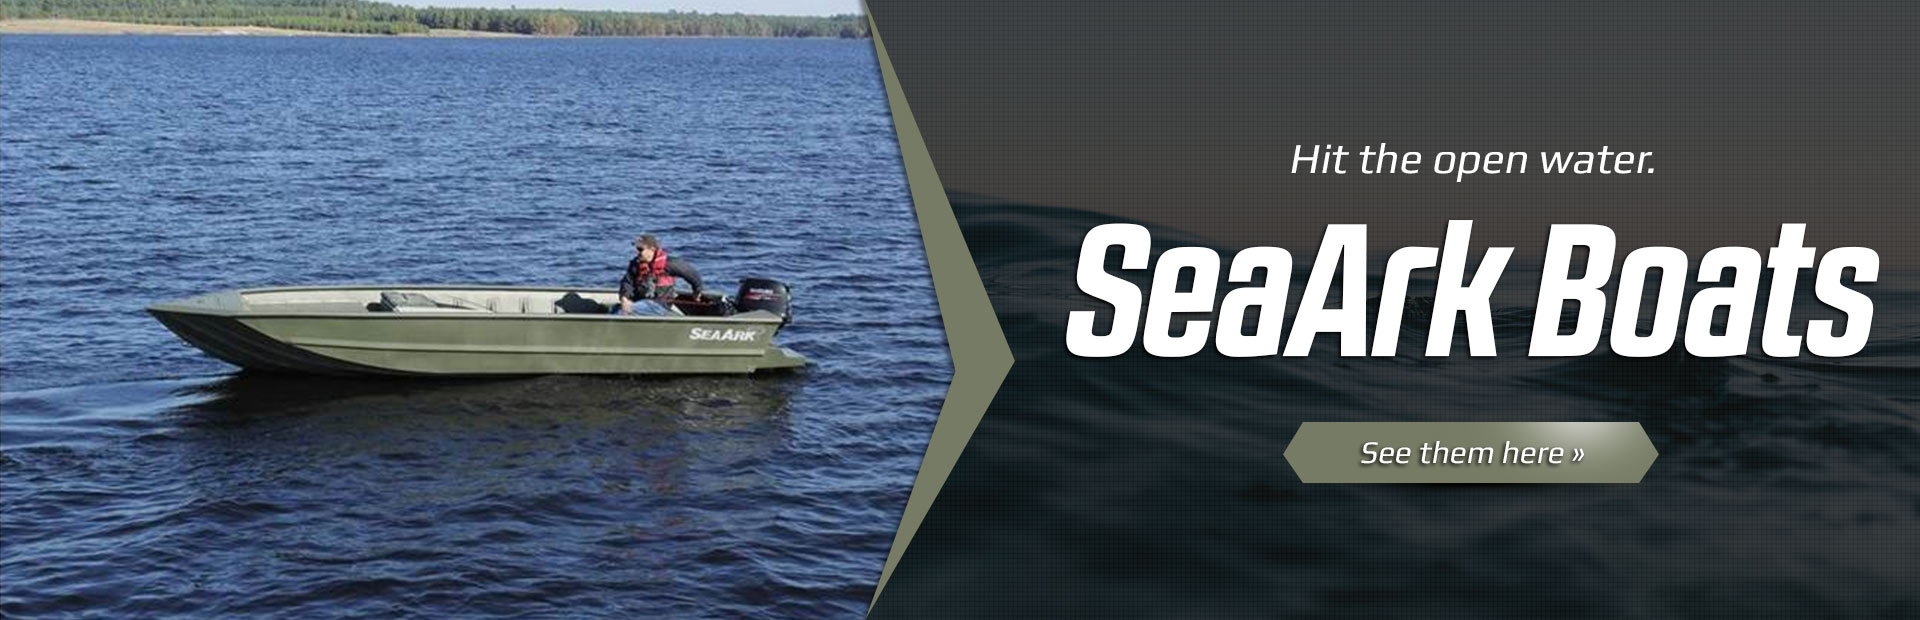 SeaArk Boats: Click here to view the models.